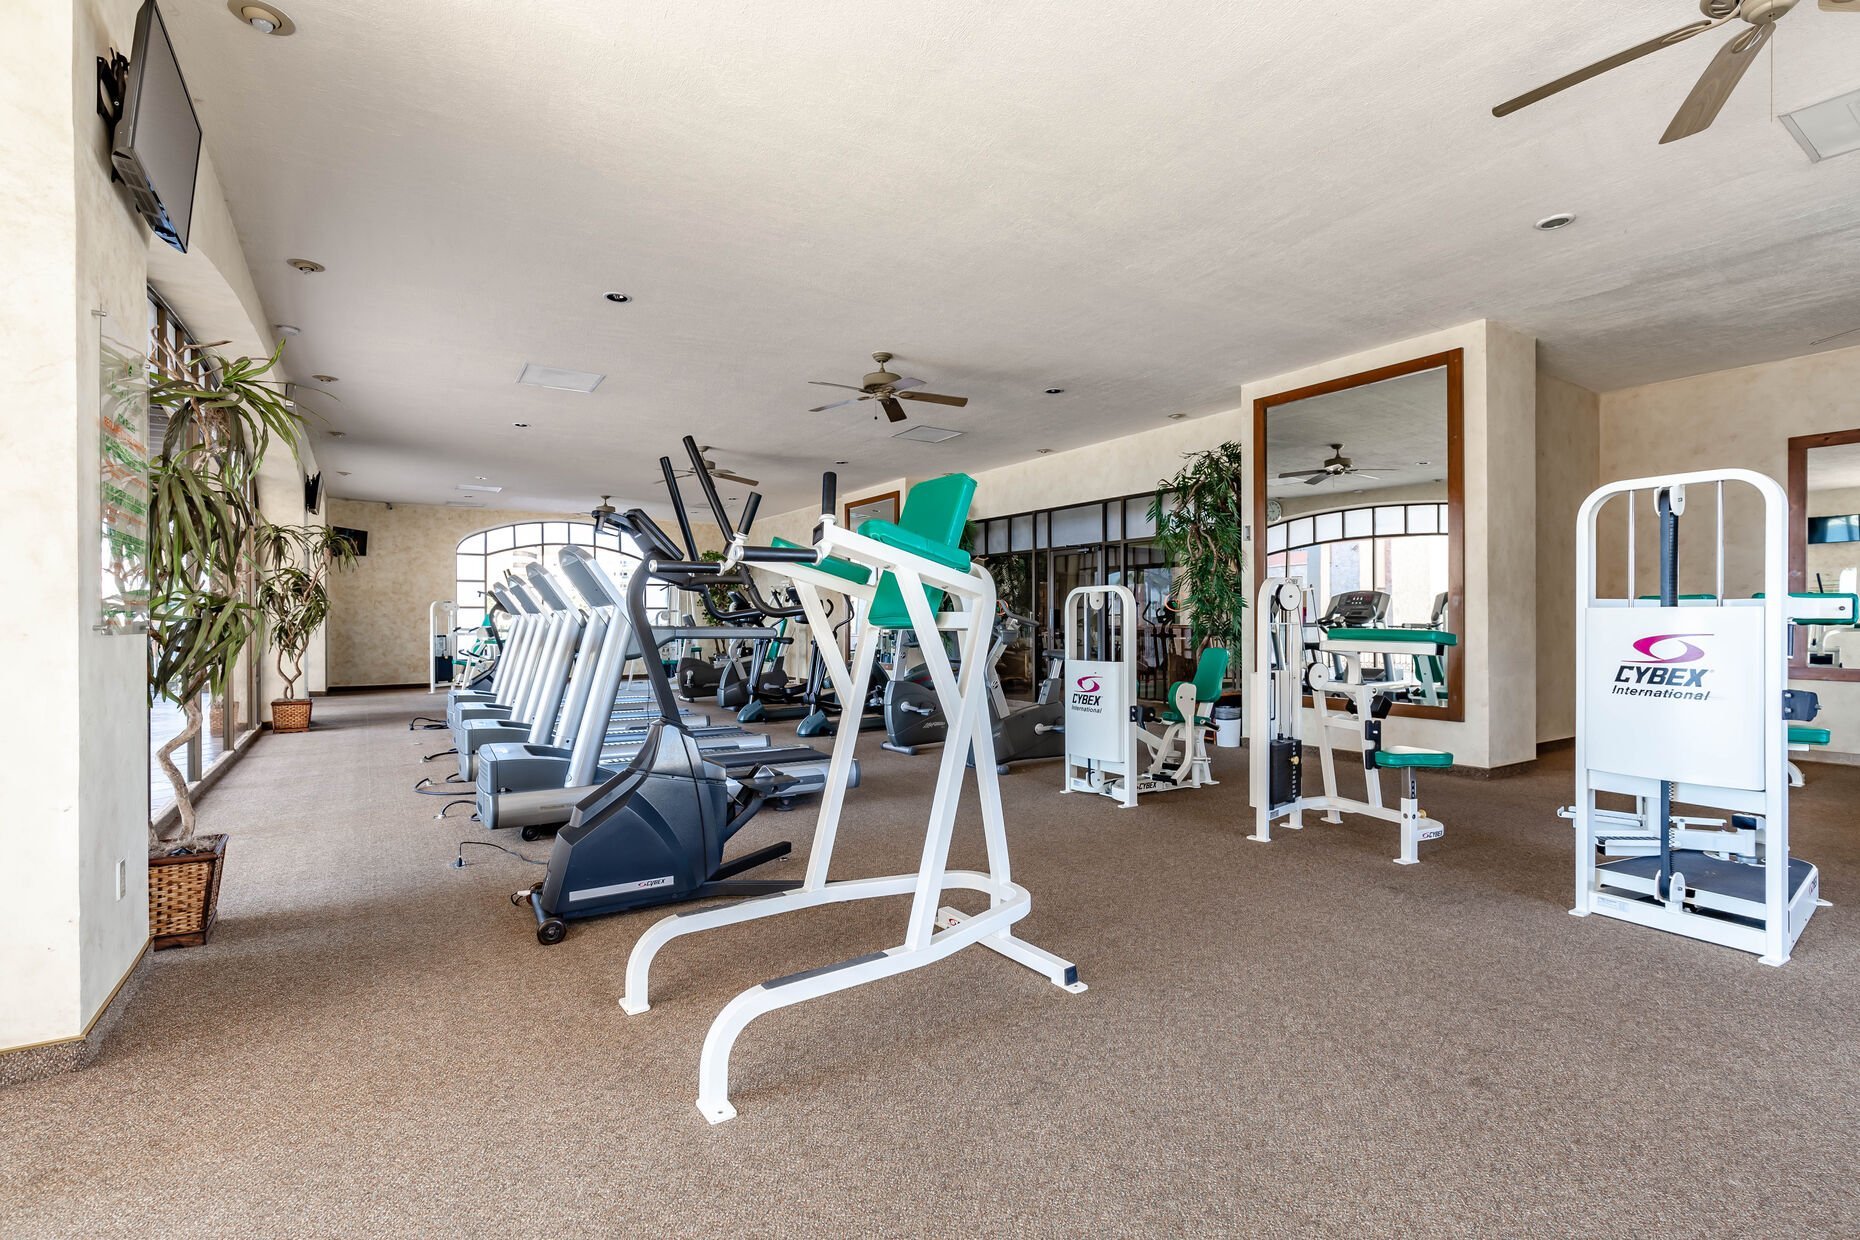 Gym located on 2nd floor